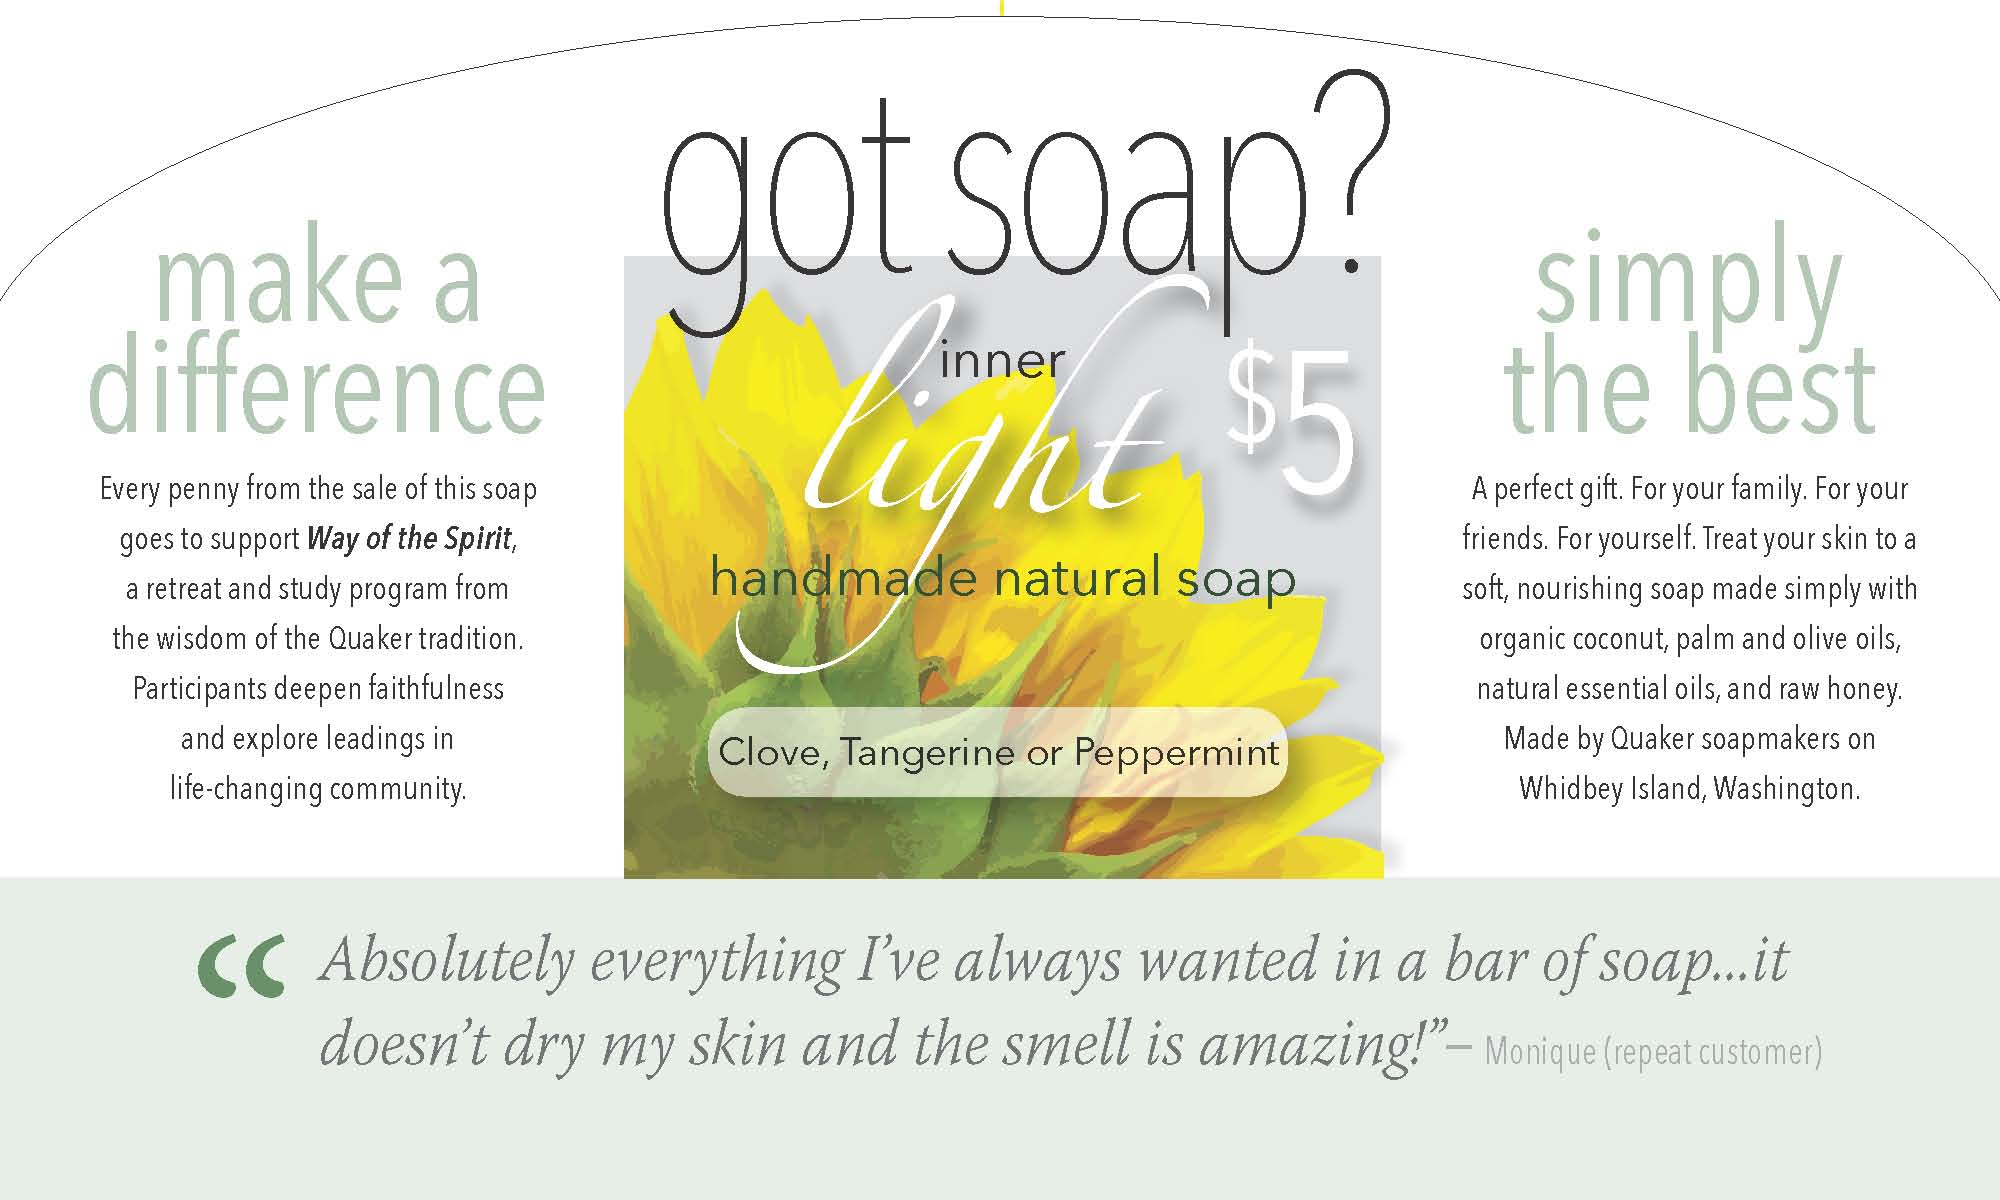 Handmade Natural Soap benefits Way of the Spirit